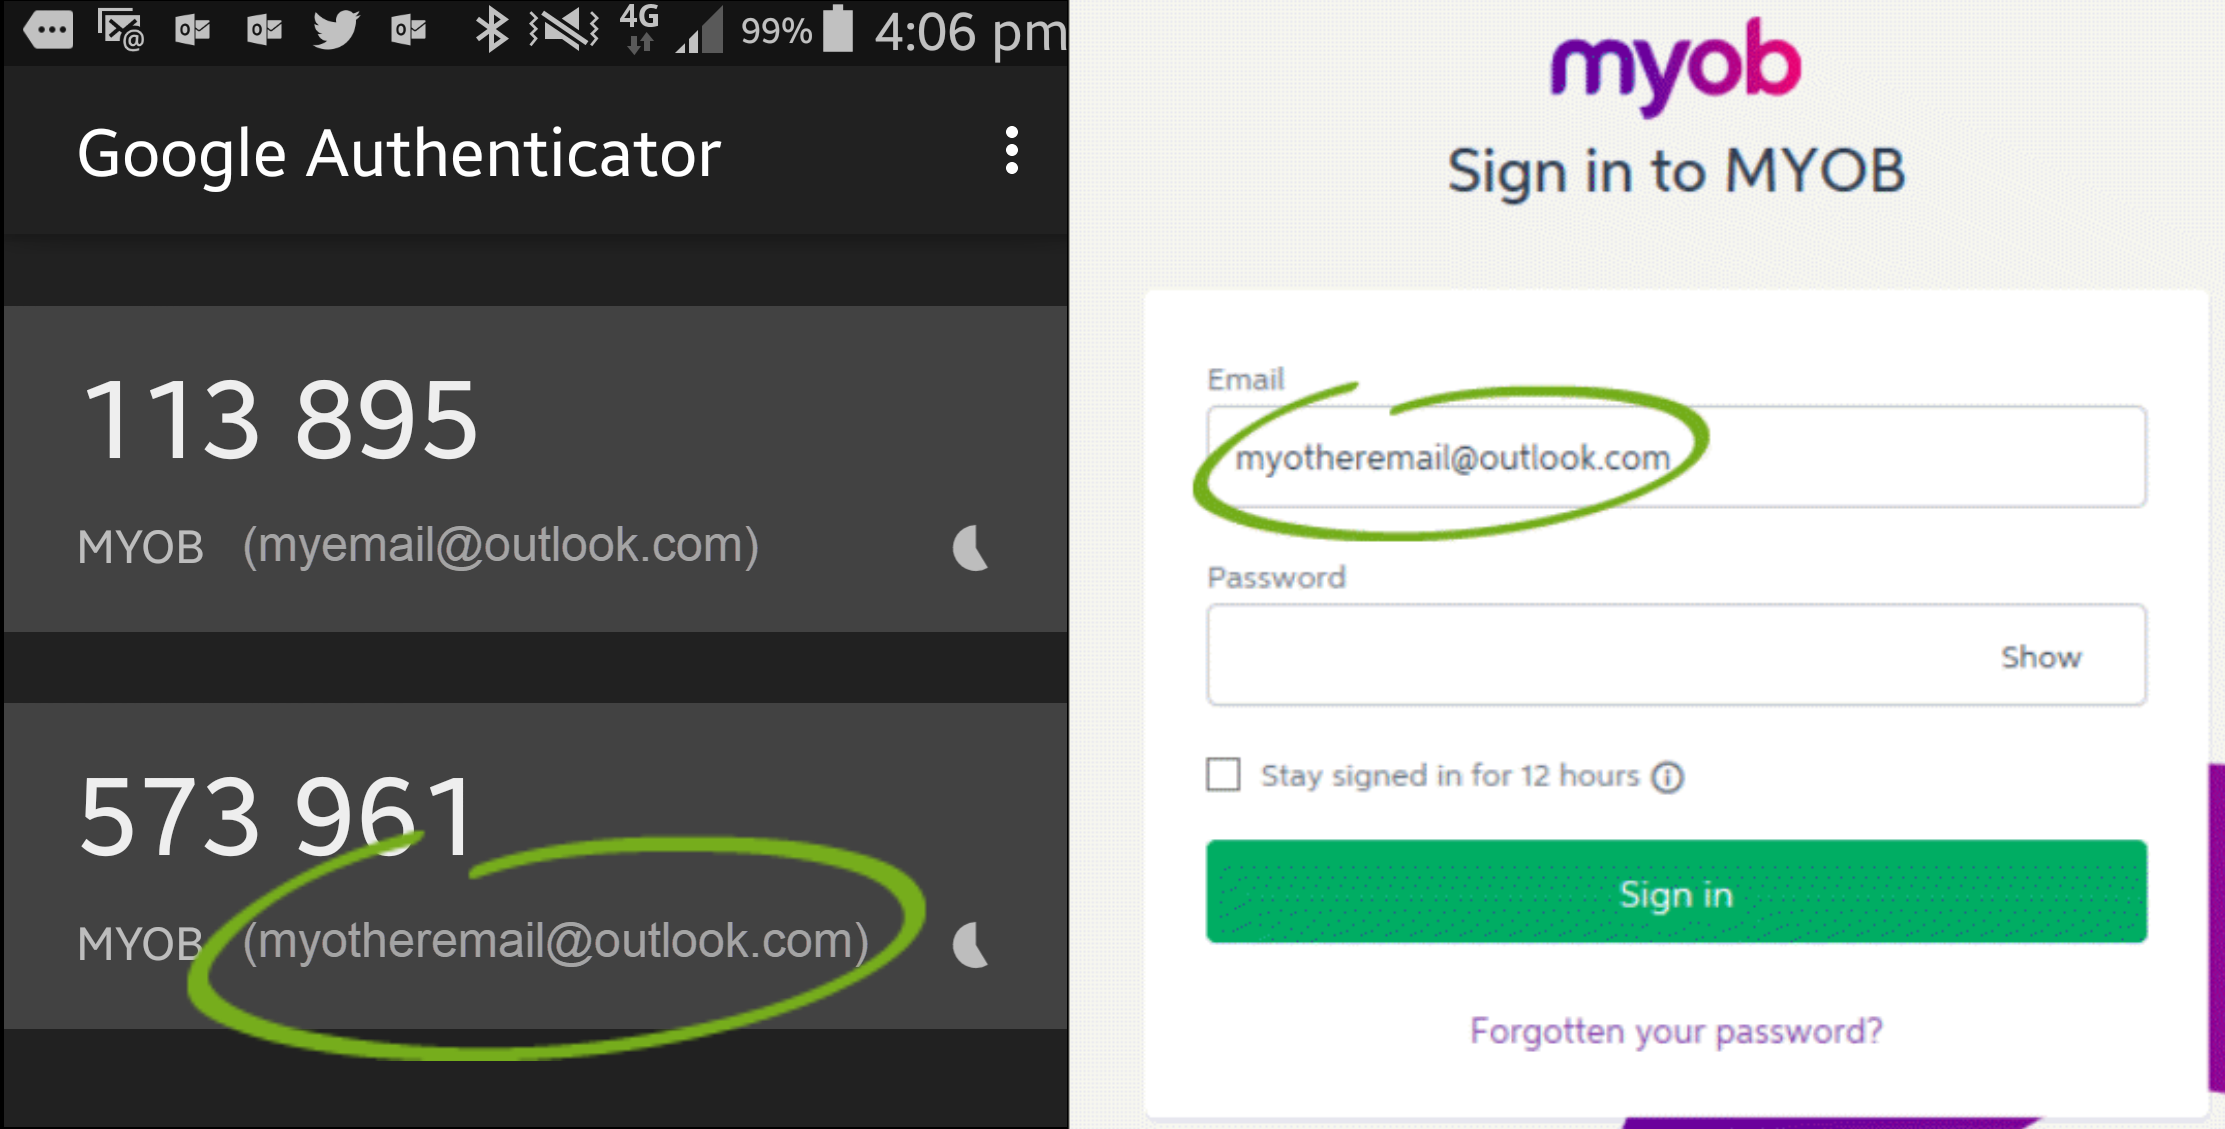 Ensure your MYOB login email matches your 2FA account